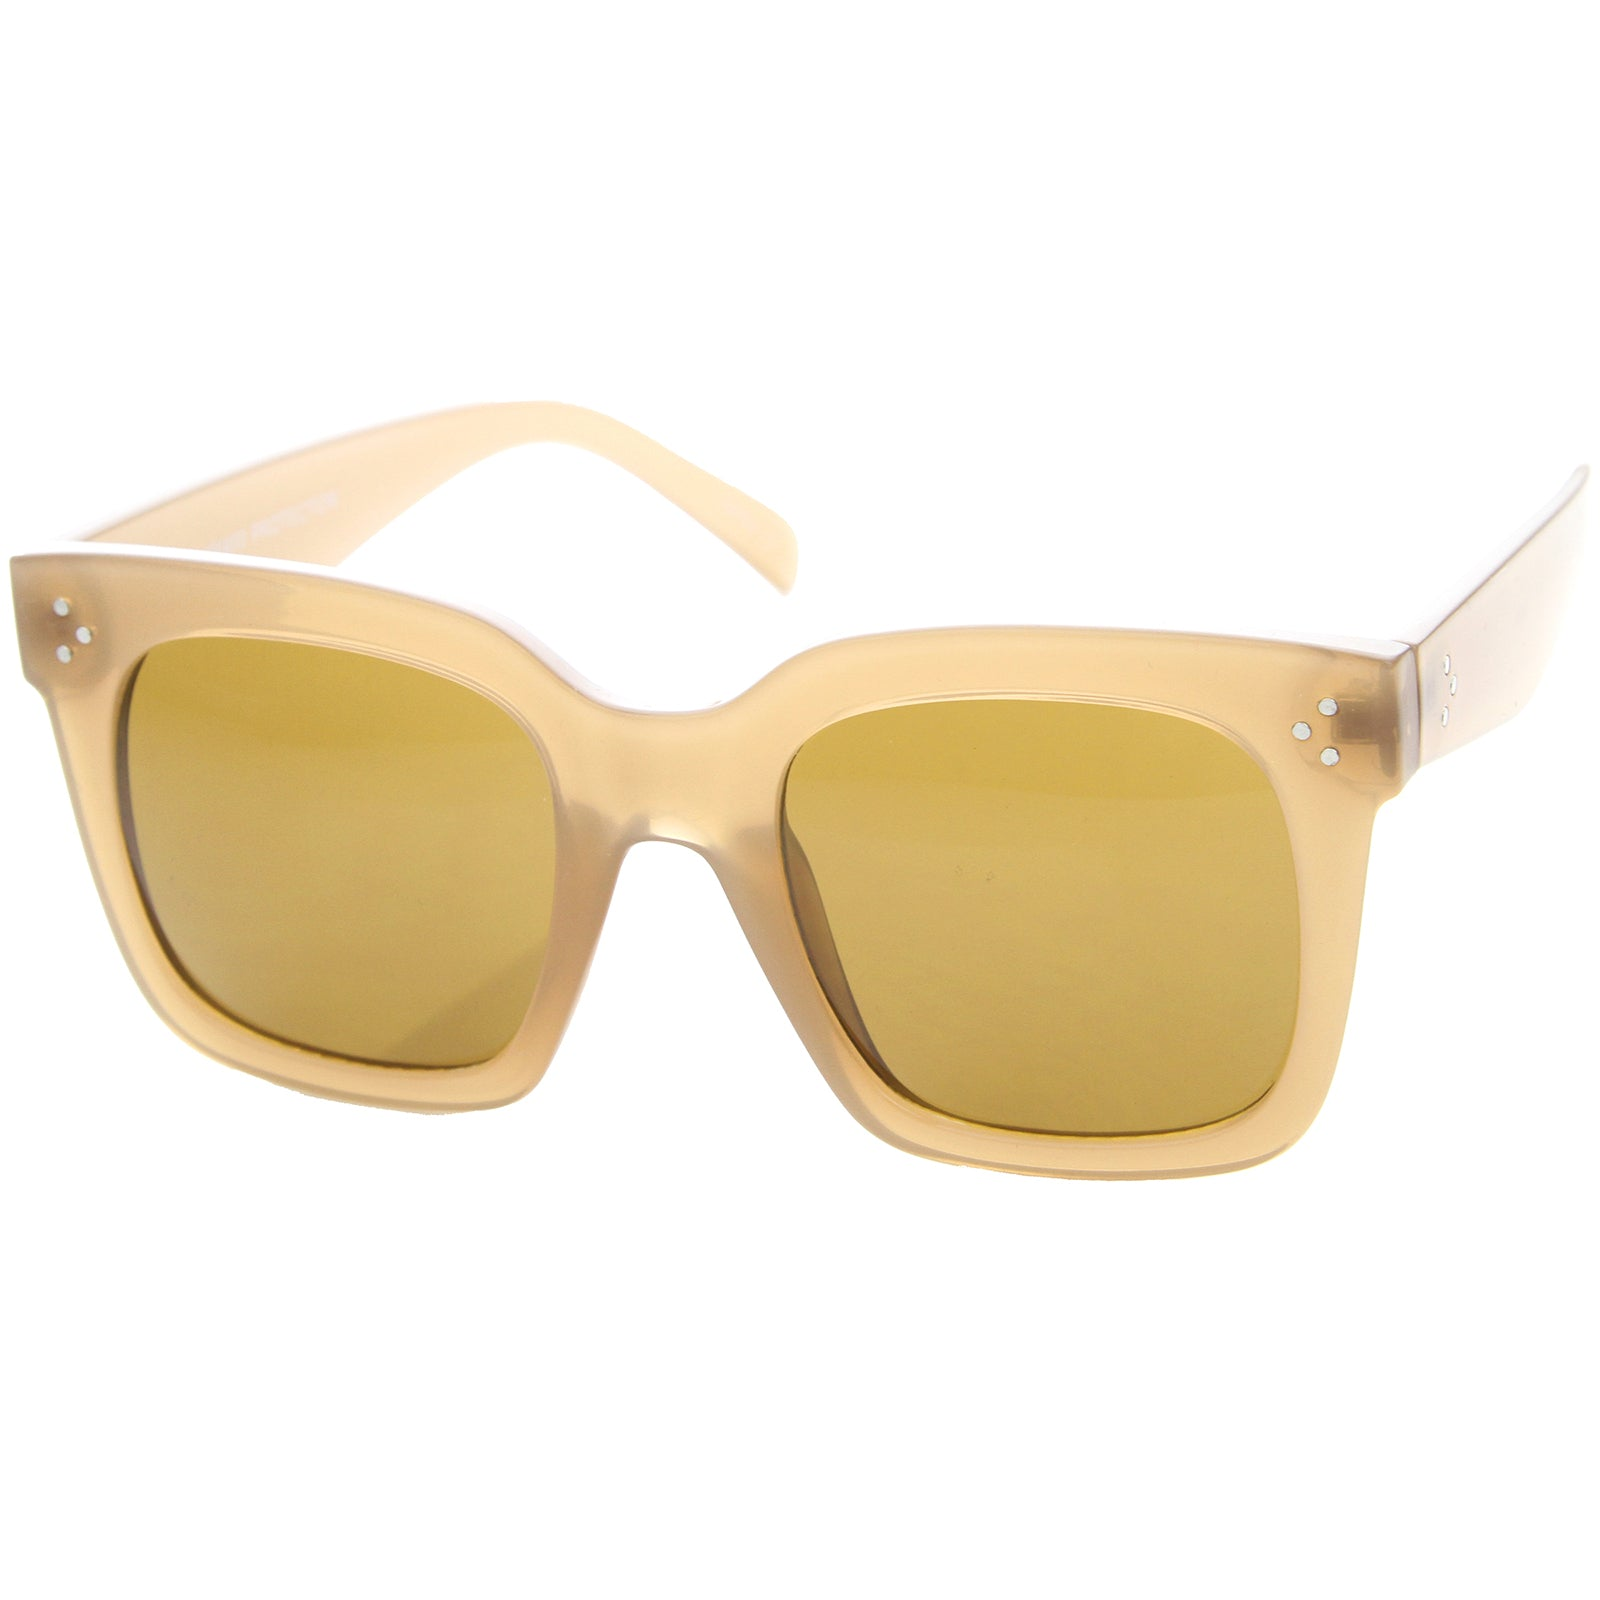 Womens Horn Rimmed Sunglasses With UV400 Protected Gradient Lens - sunglass.la - 14